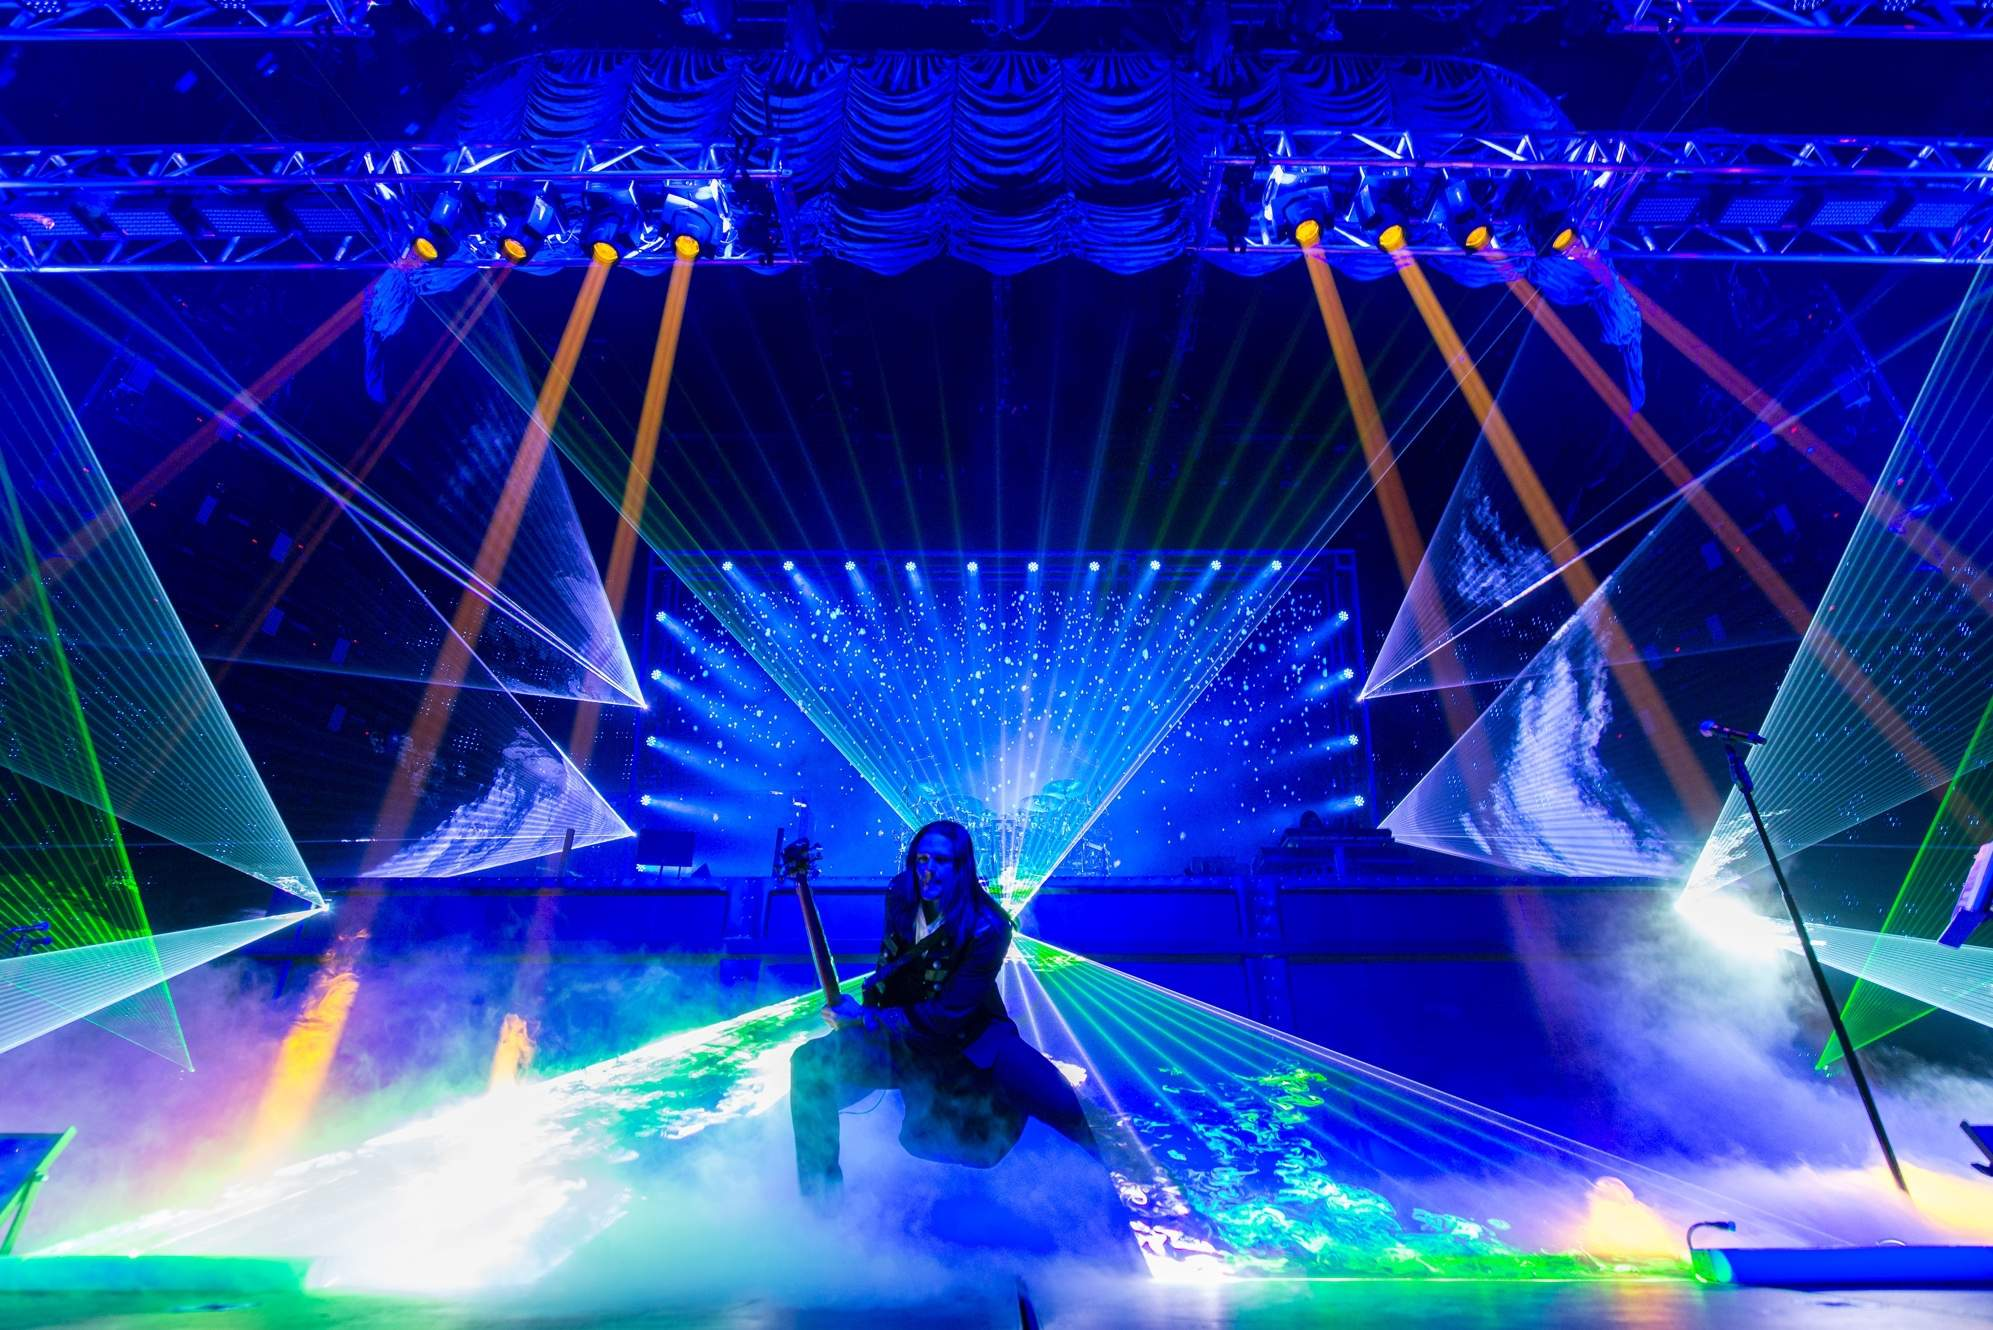 Trans-Siberian Orchestra returns to Wilkes-Barre on Dec. 11 with 'Ghosts of Christmas Eve' and free album | NEPA Scene